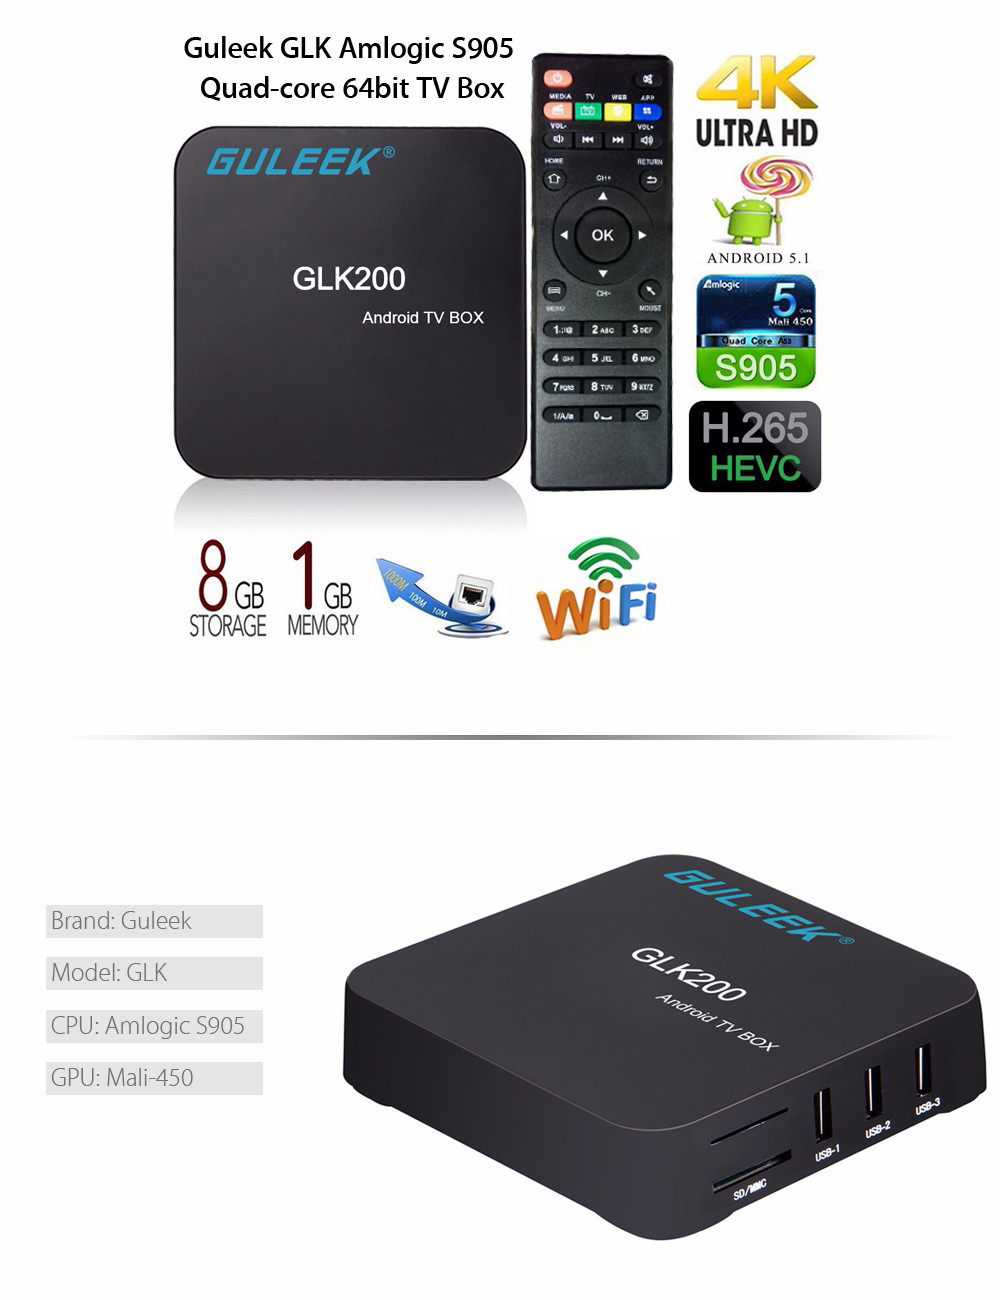 Guleek GLK200 Android Box Amlogic S905 Quad-core 64bit Android 5.1 Mini PC Support 2.4G WiFi